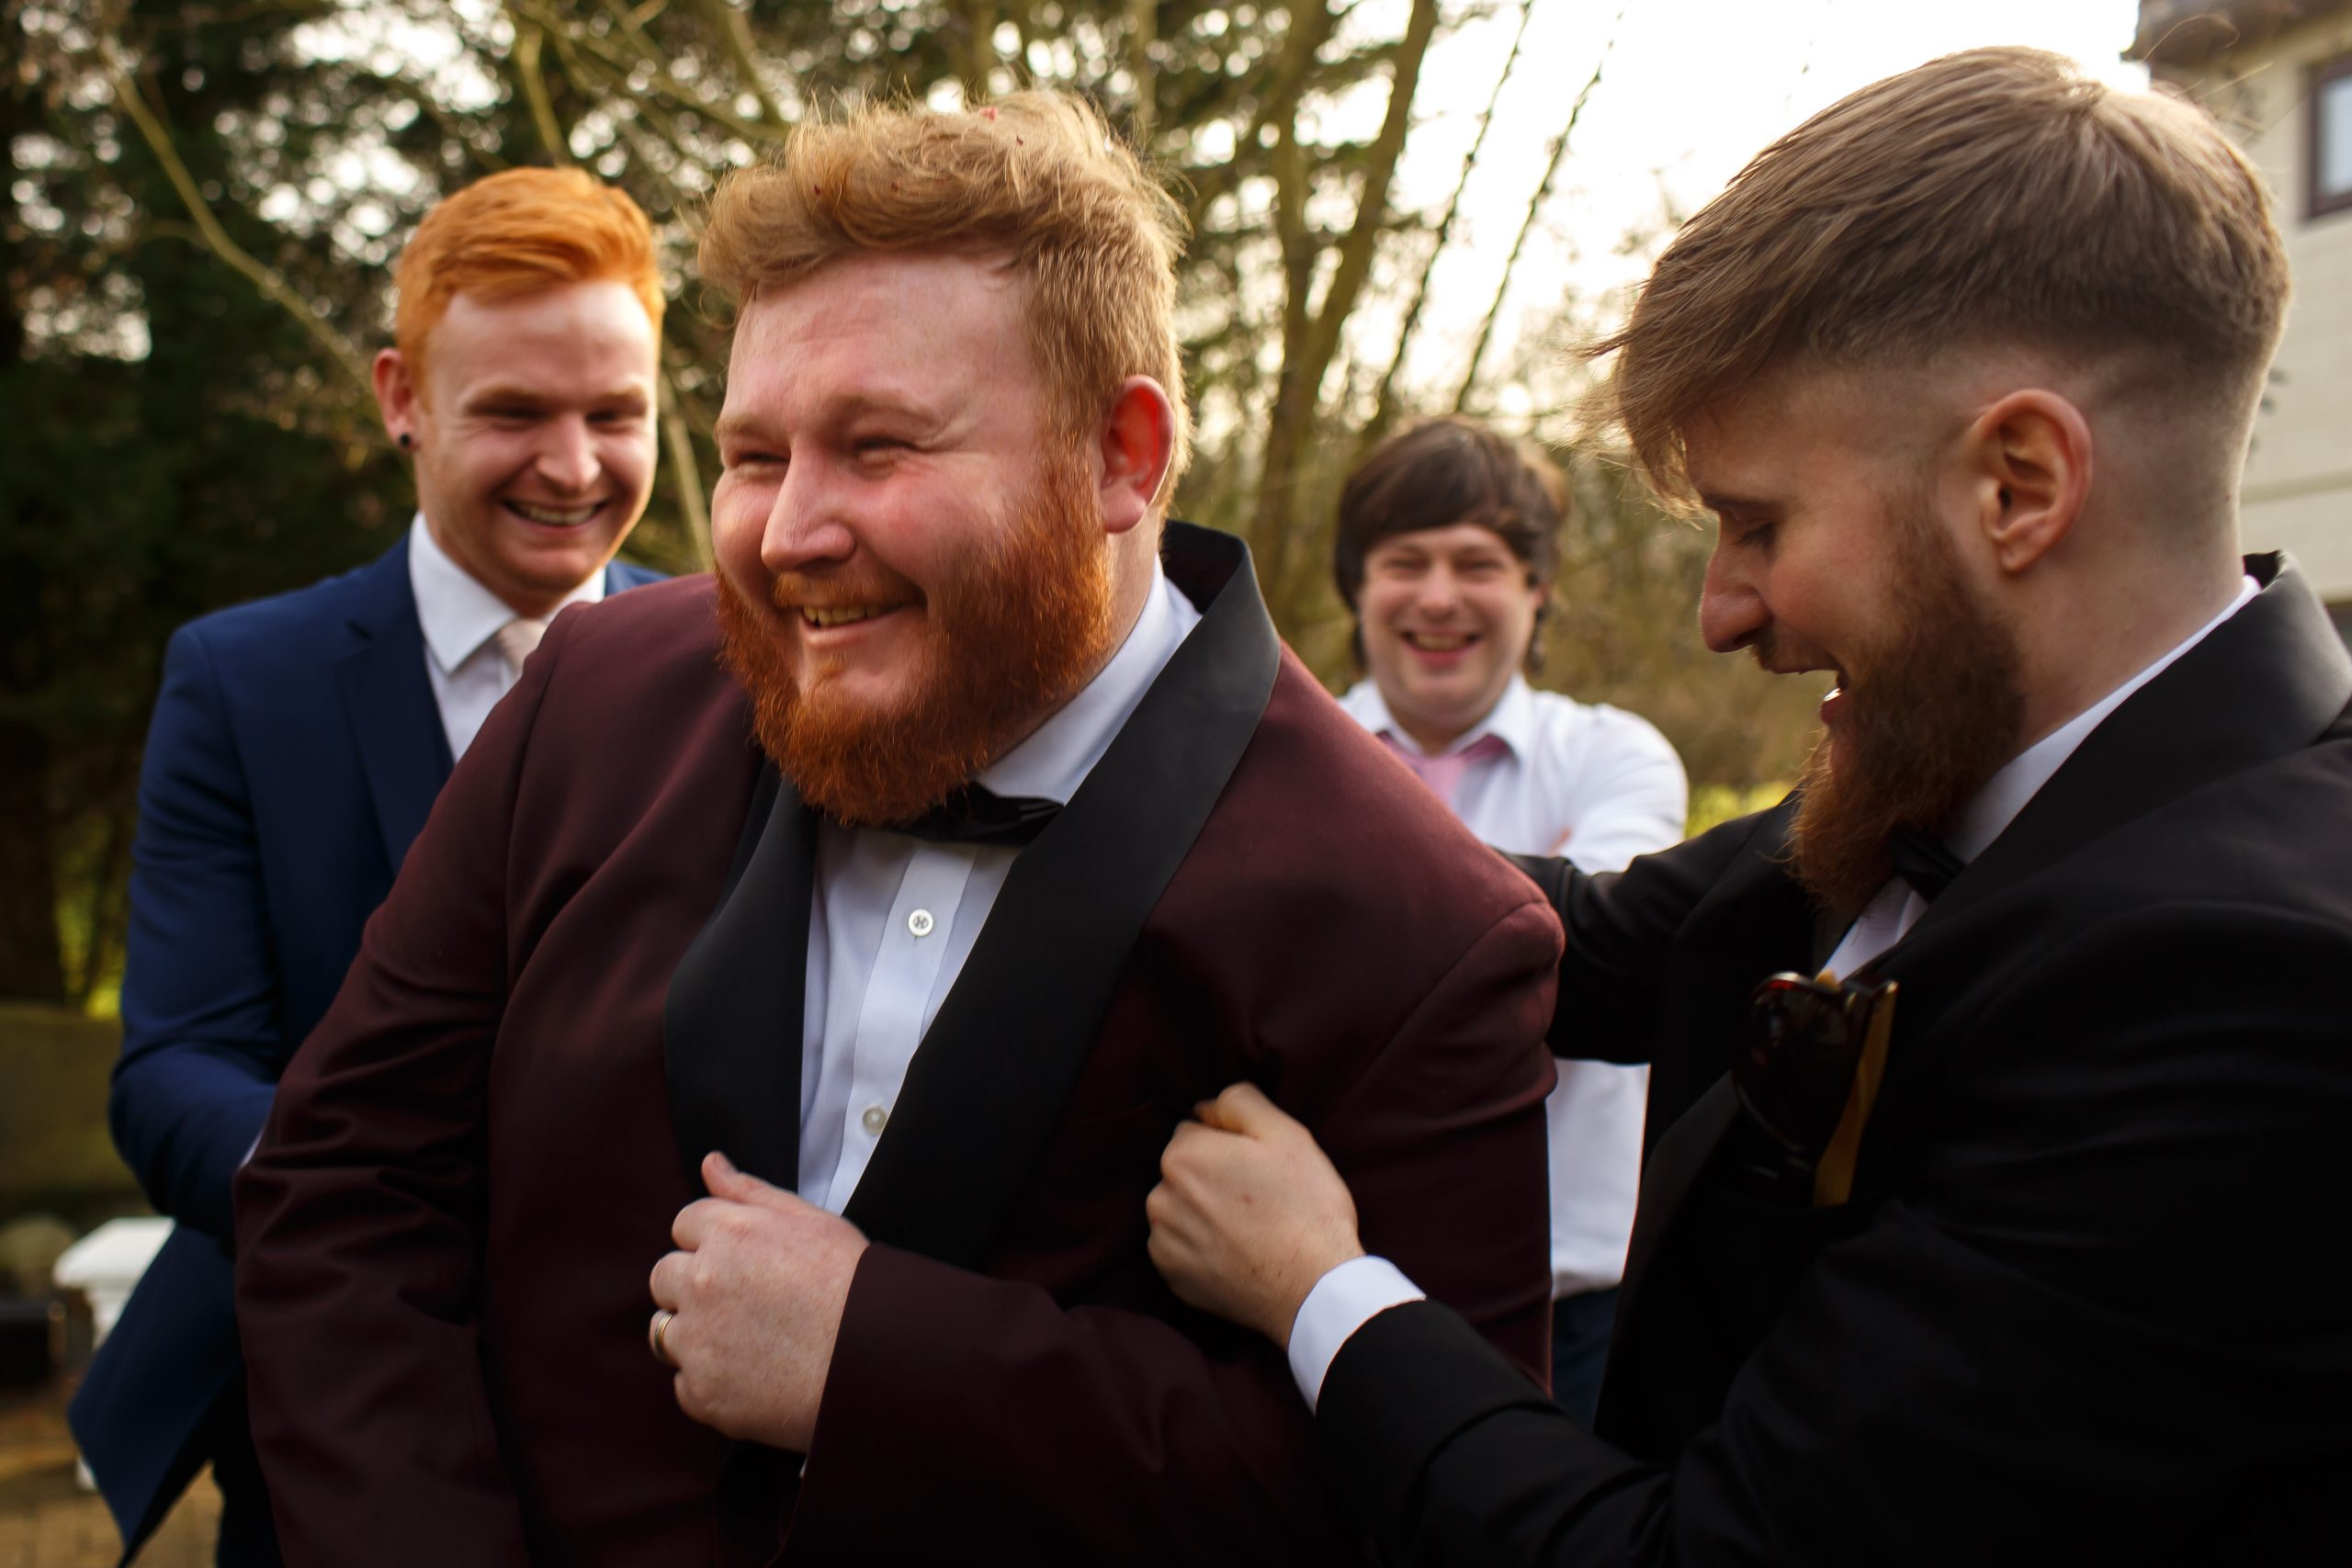 Groom with ginger hair wearing maroon tuxedo being hugged by his smiling friends | Foxfields Country House Wedding Photography